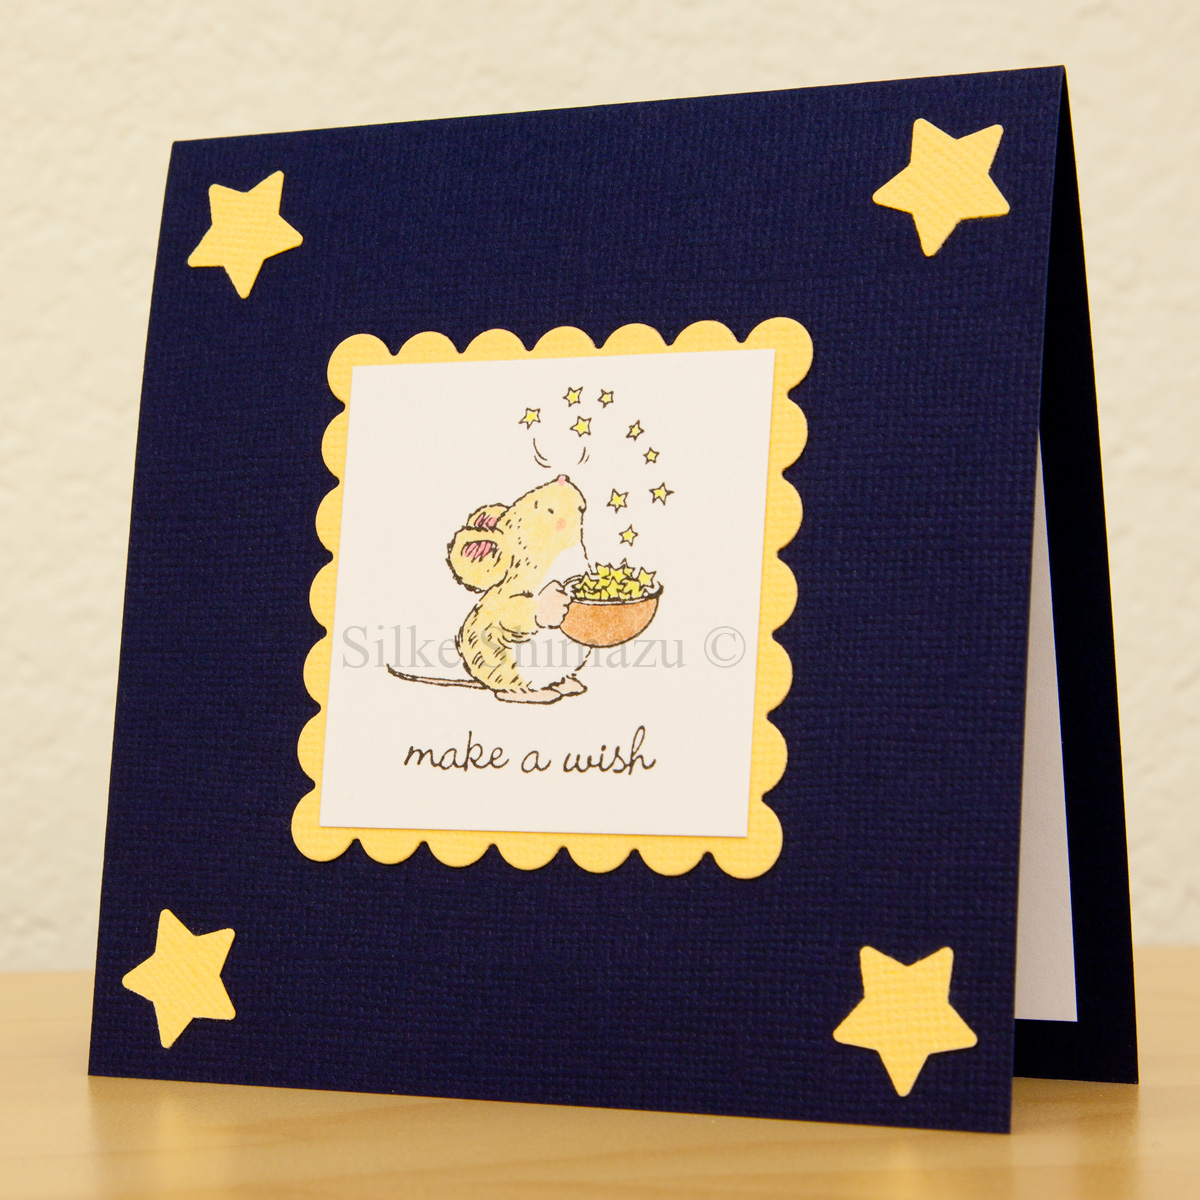 Make A Wish Birthday Card Crafthubs – How to Make Birthday Cards